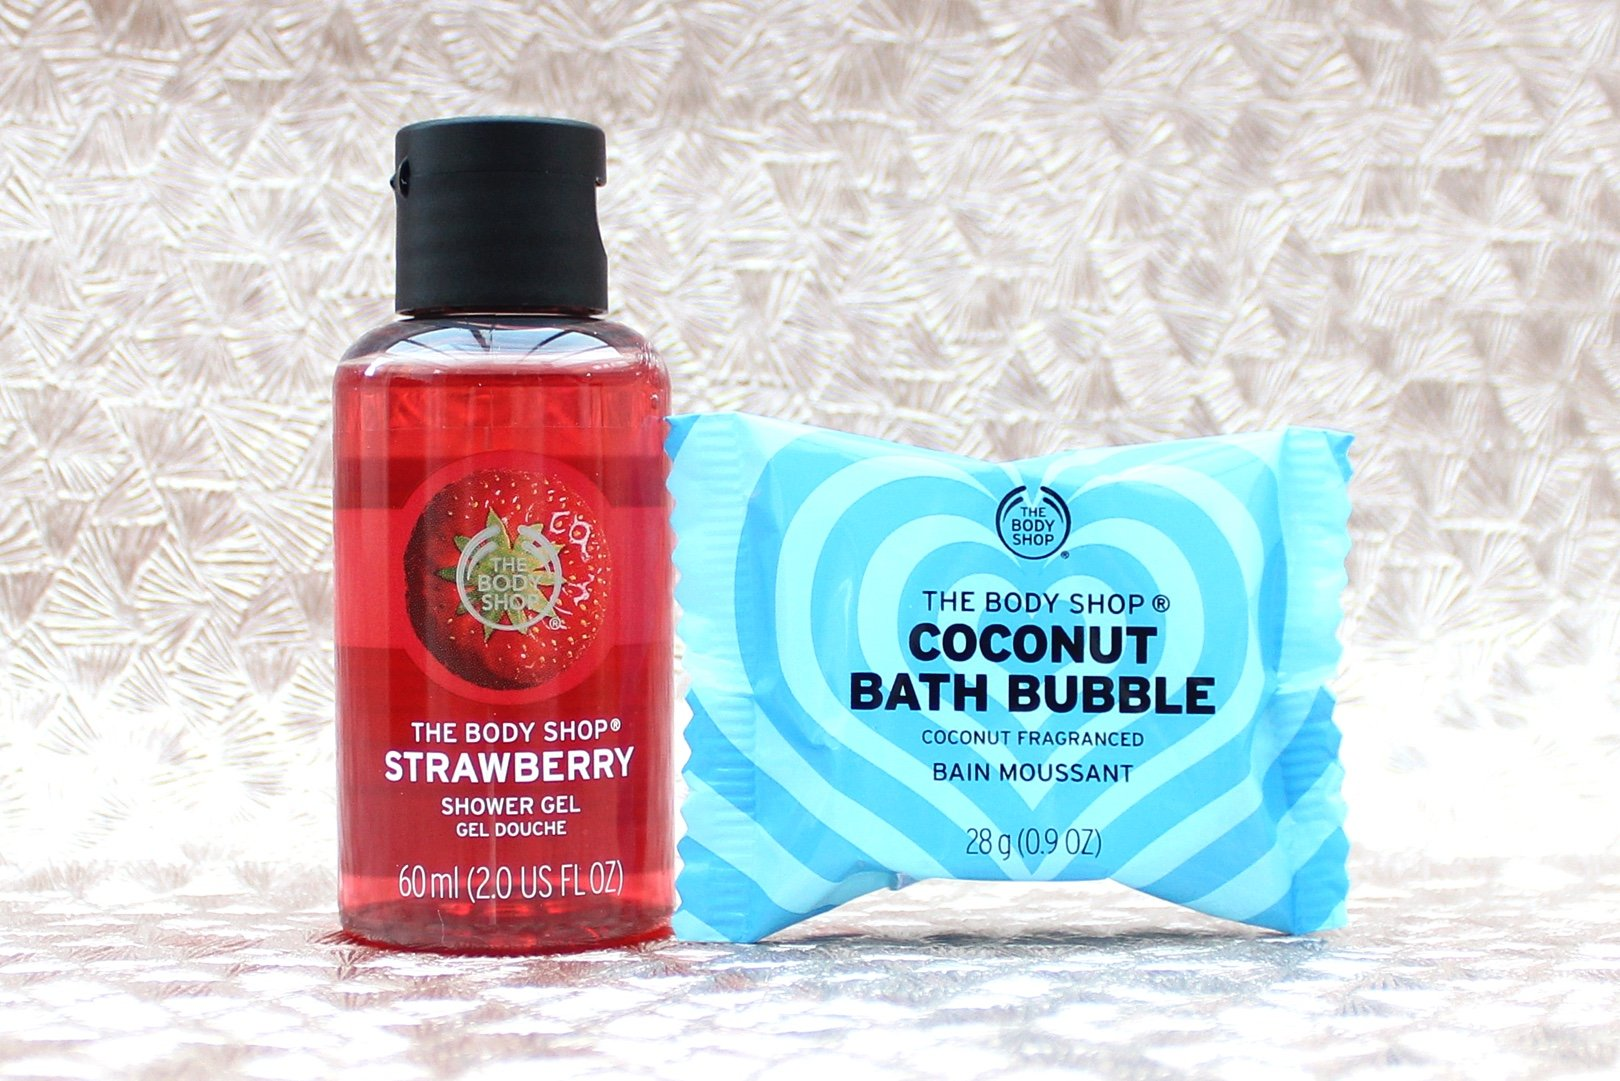 The Body Shop 25 Days of Enchanted Deluxe Advent Calendar strawberry shower gel coconut bath bubble